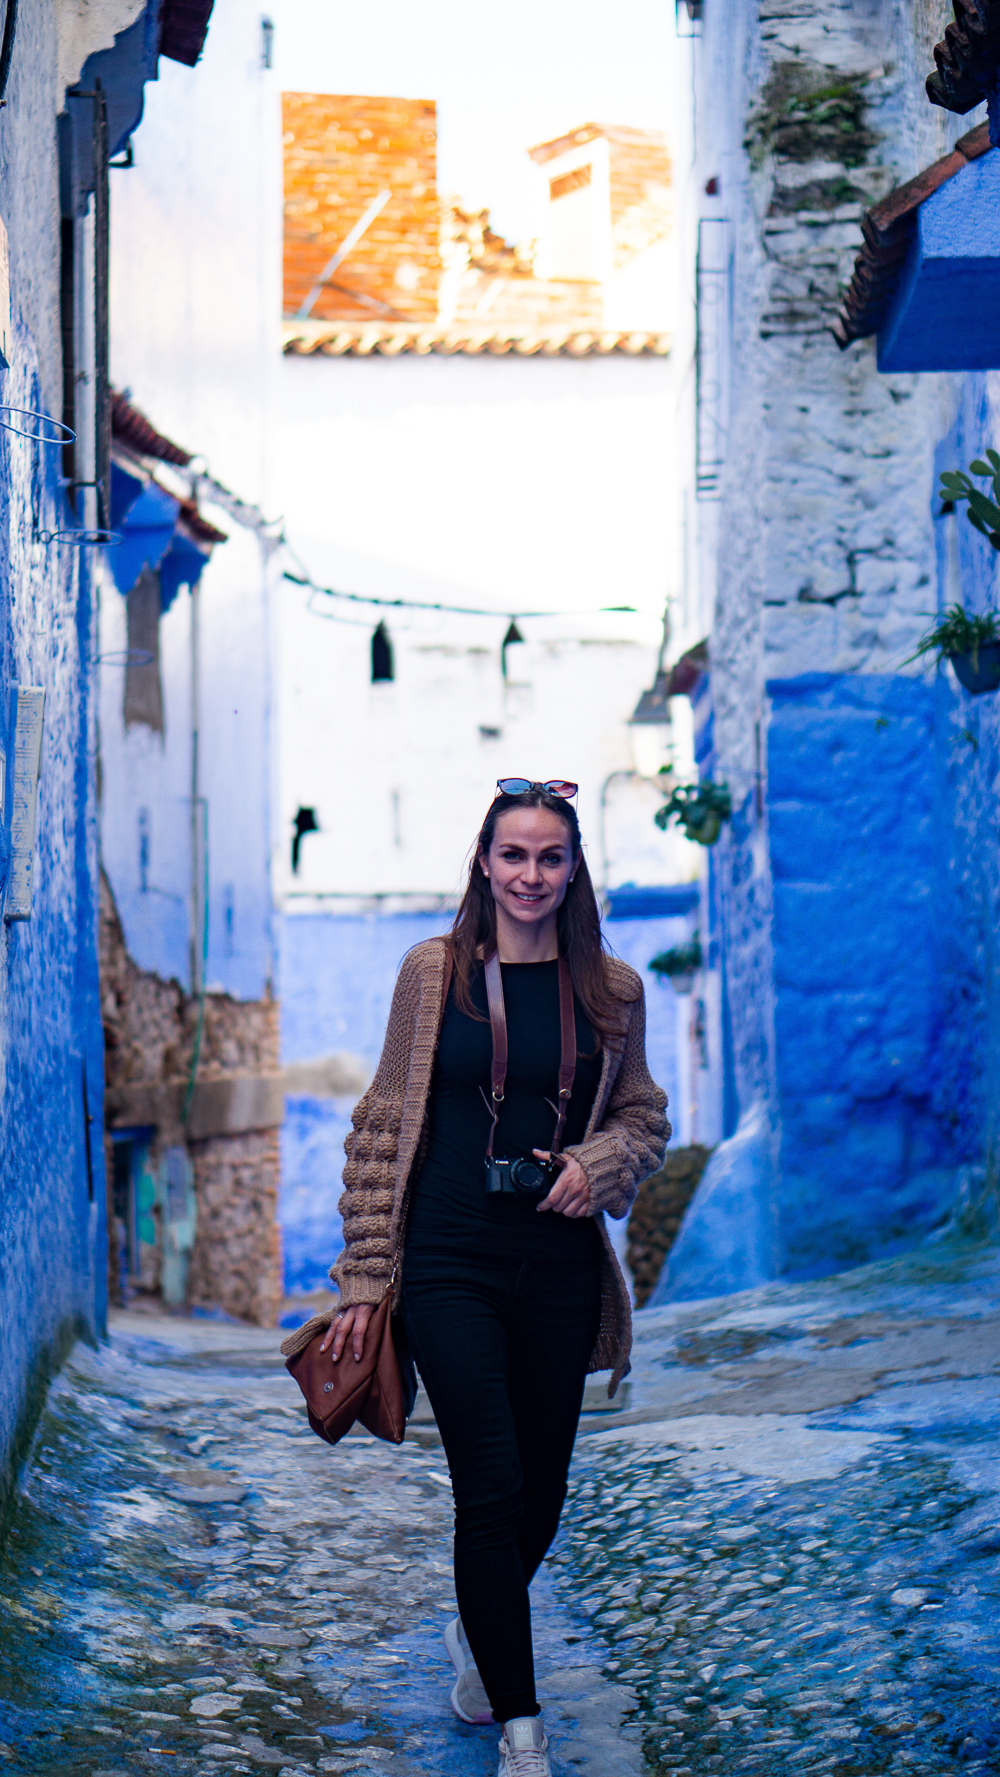 Lauri on Streets of Chefchaouen, Morocco